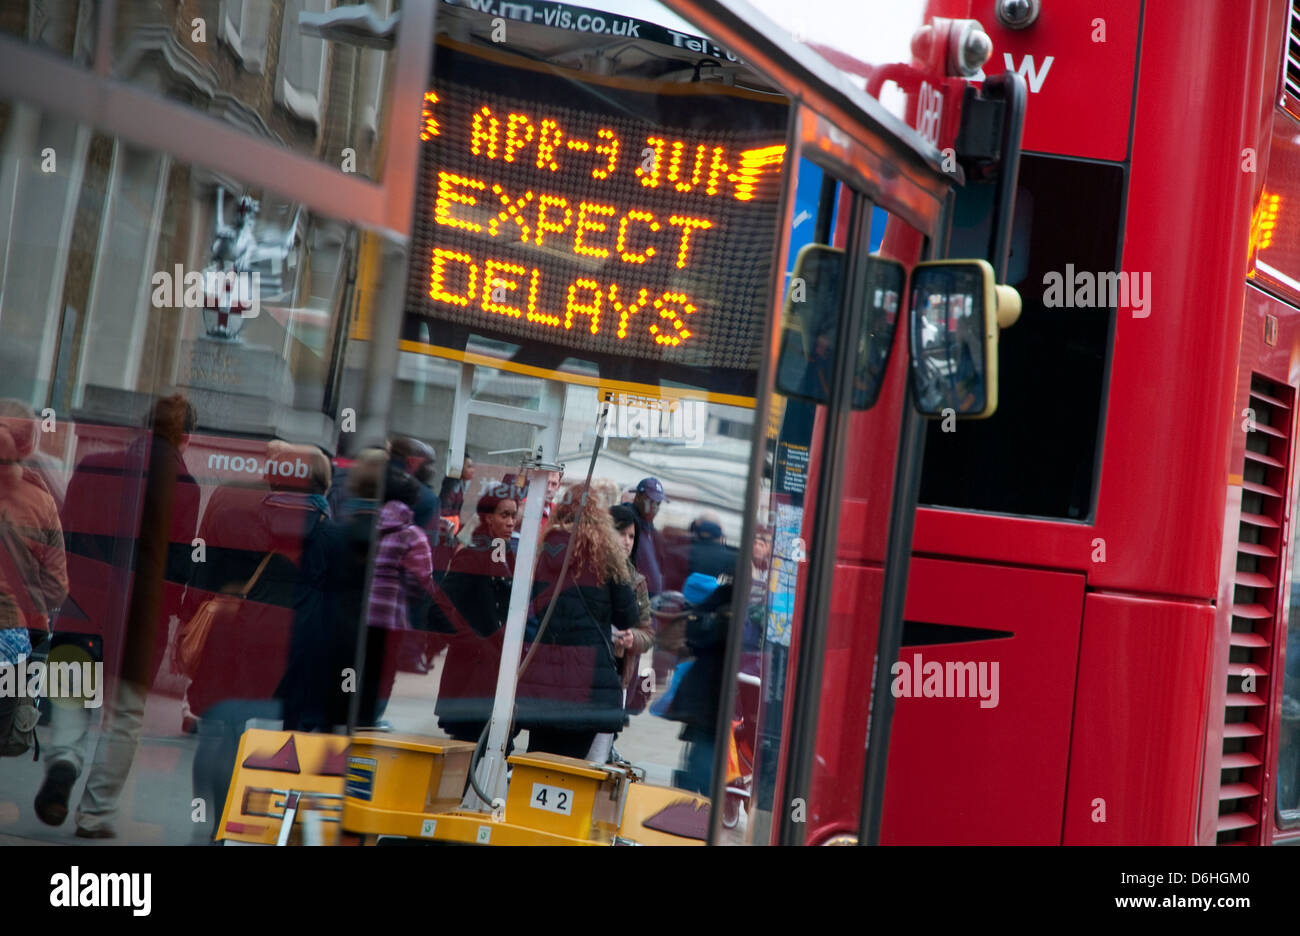 expect delays road sign, london, england - Stock Image